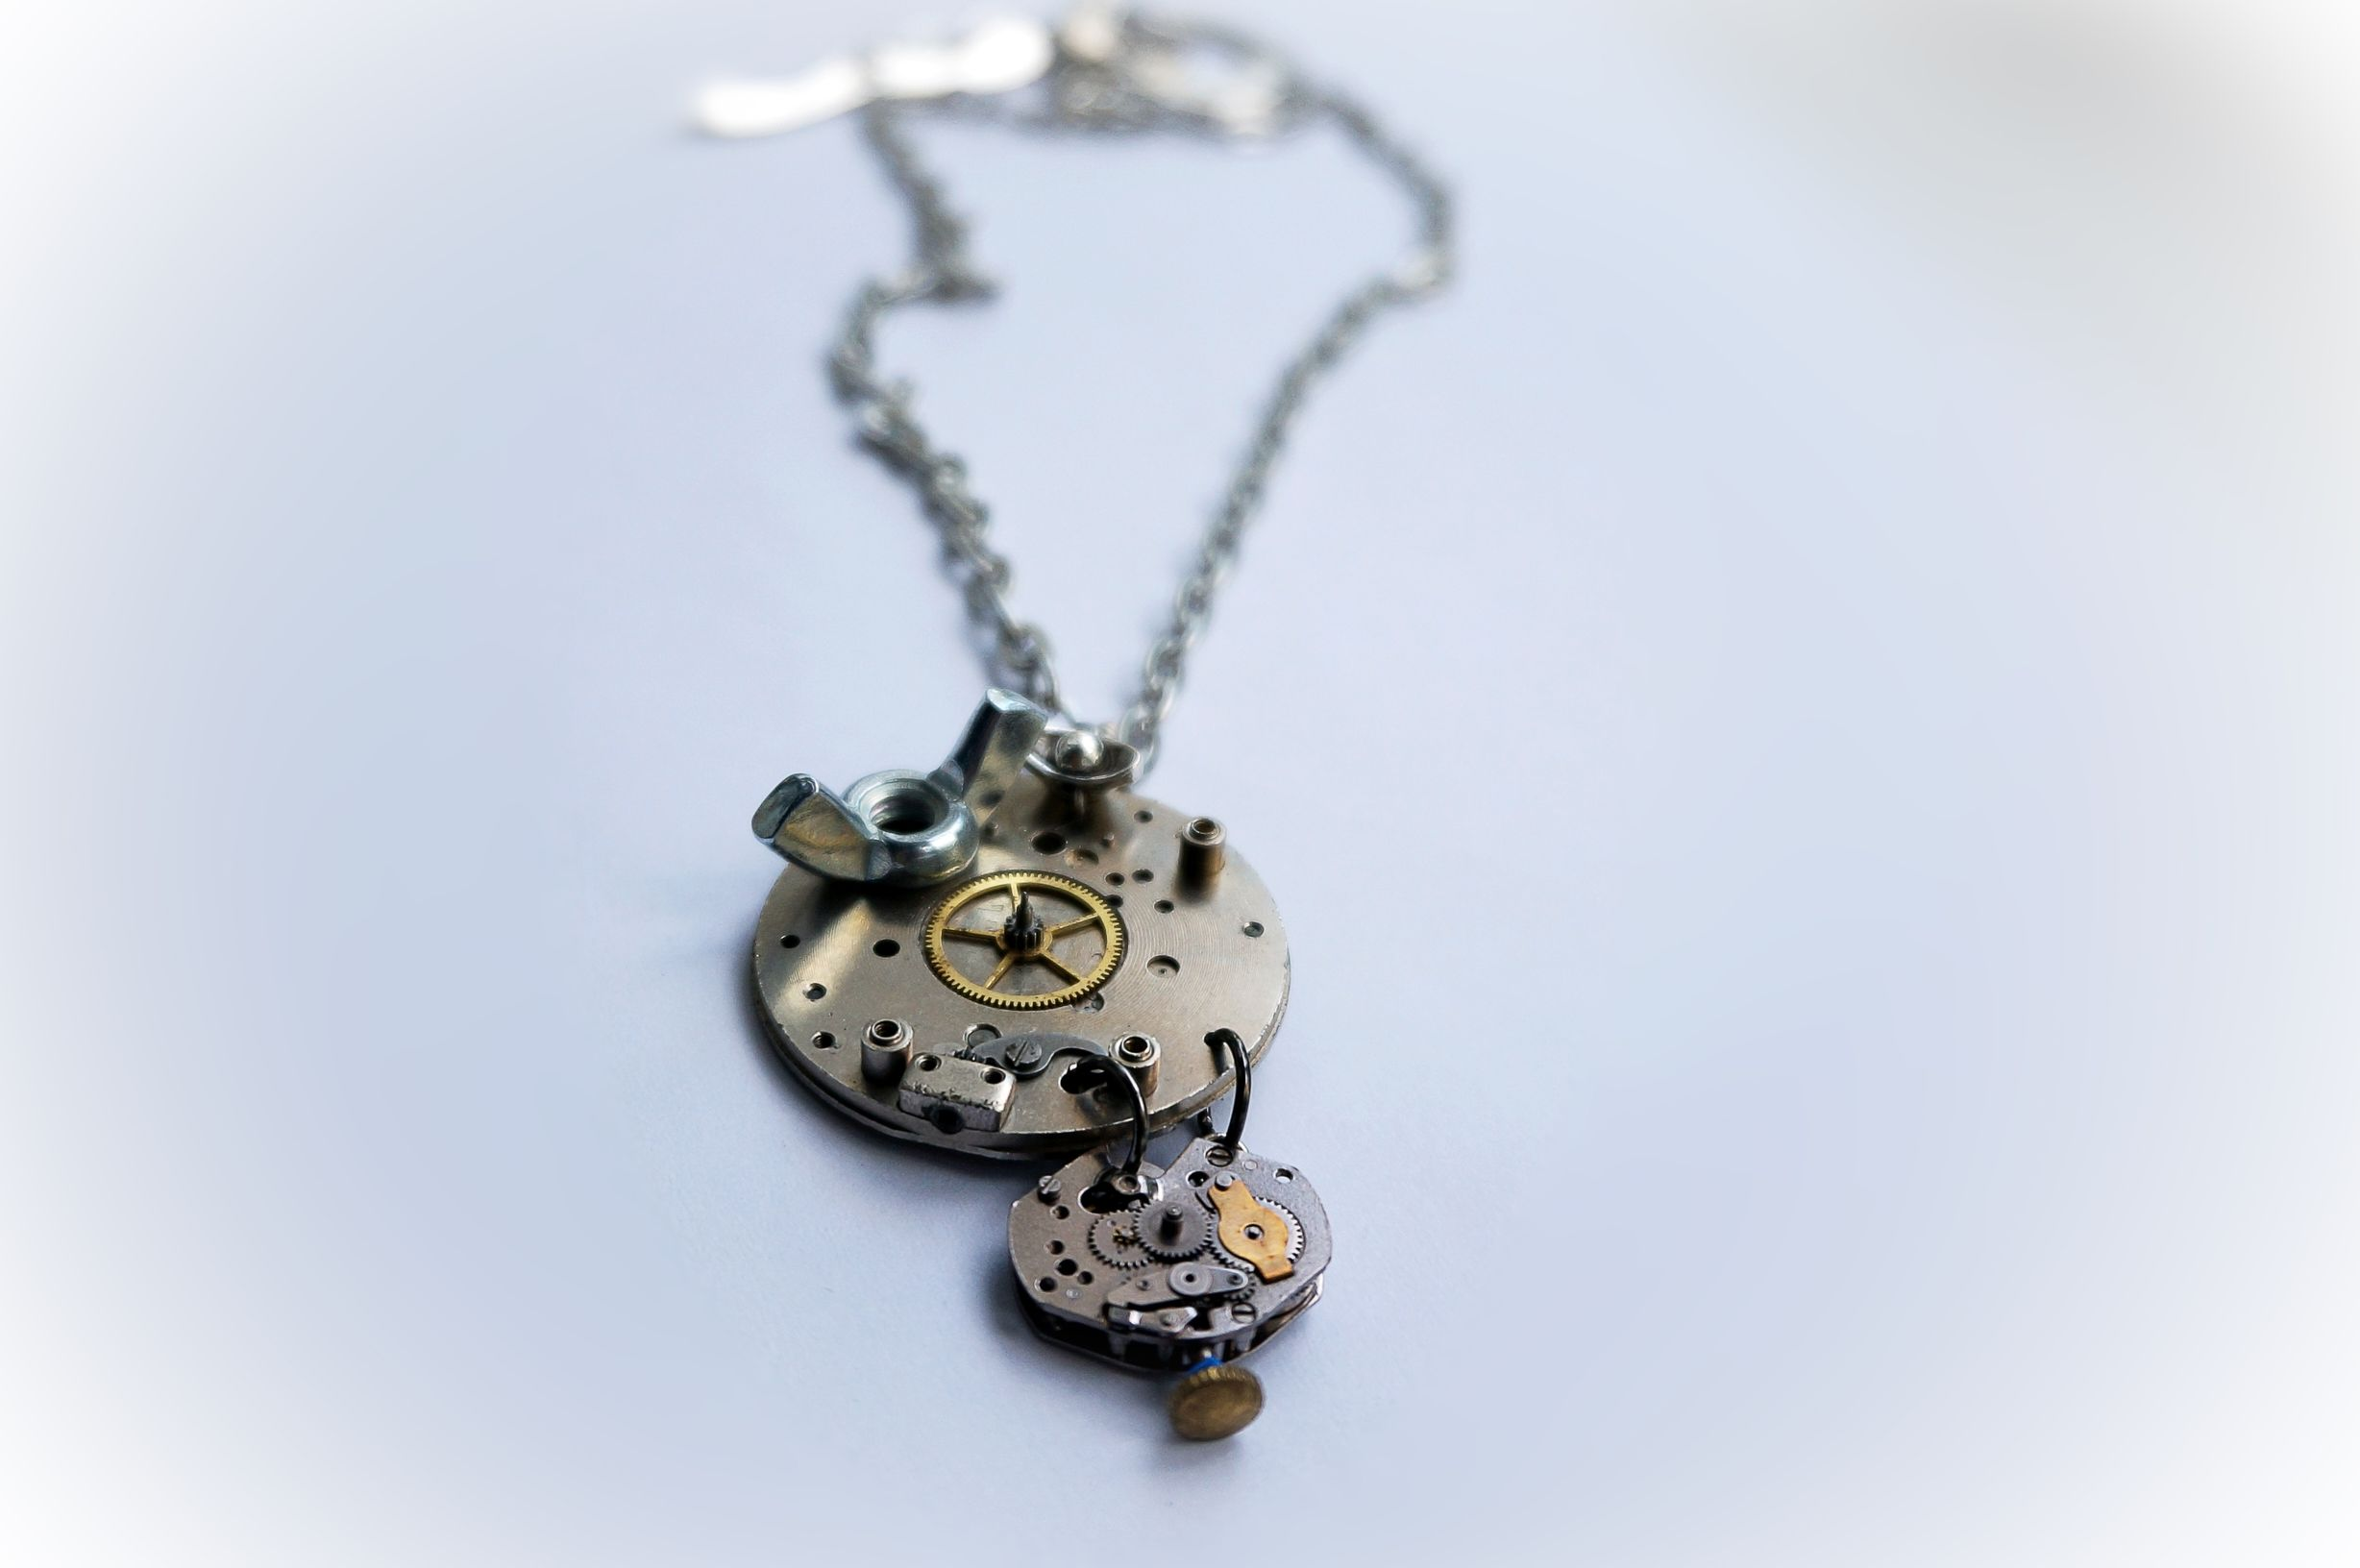 steampunk necklace pendant apocalypse